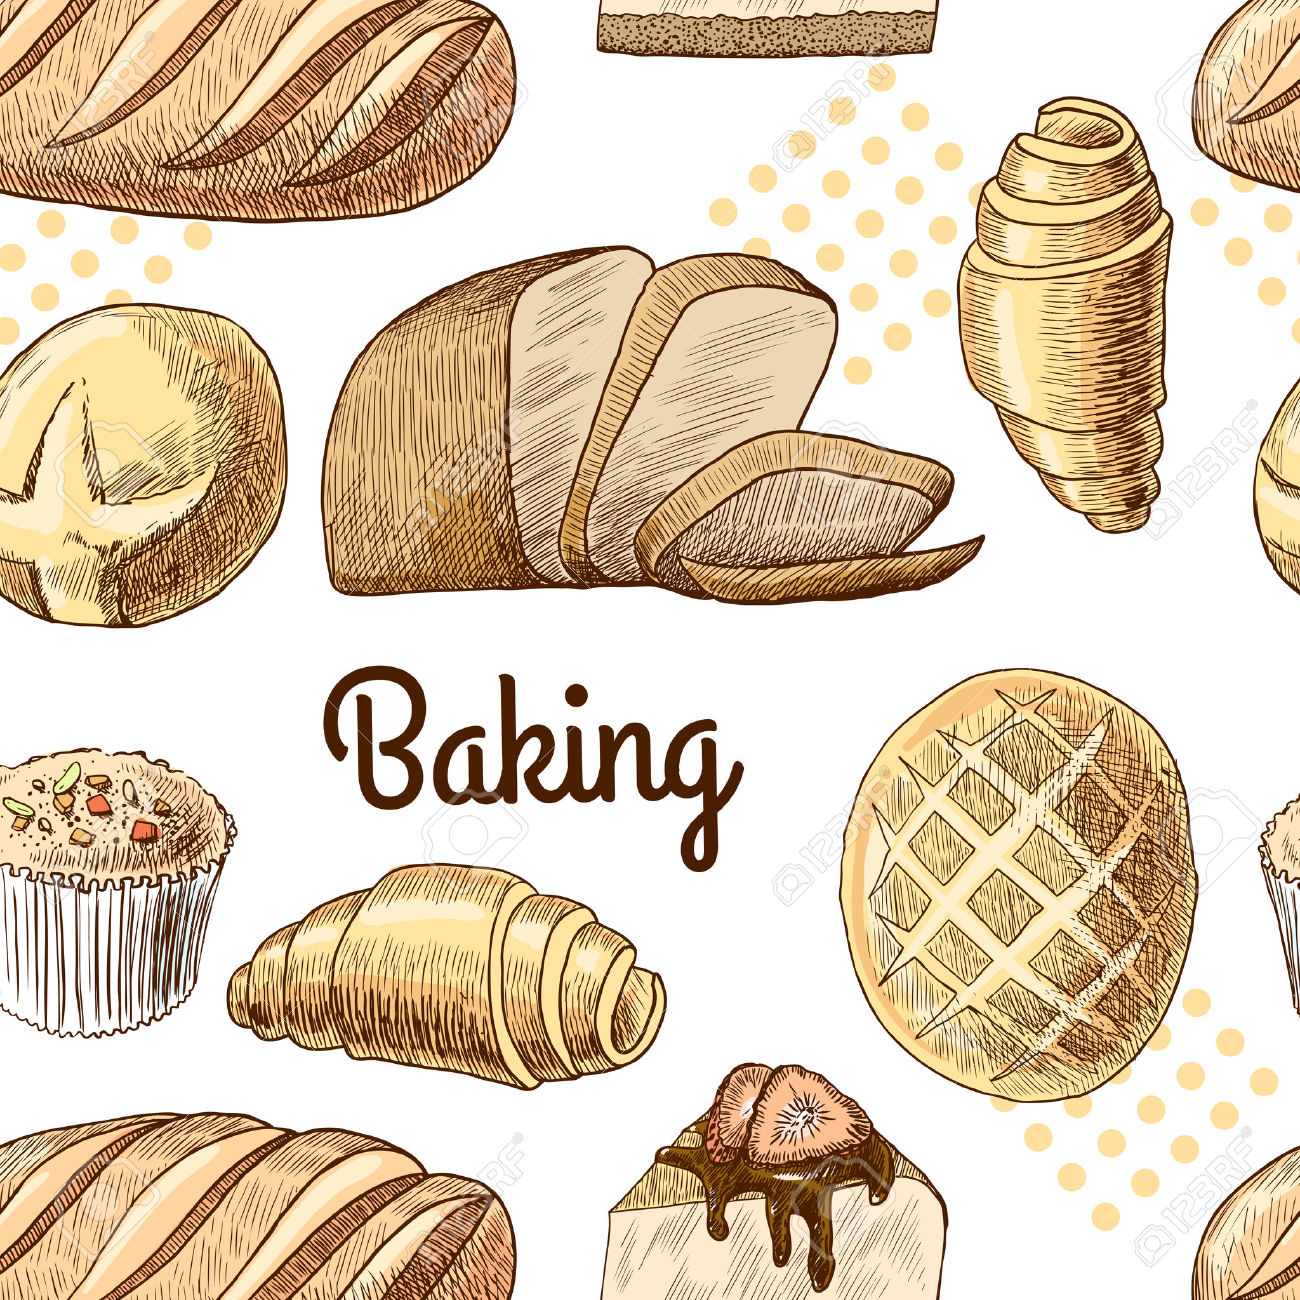 Puff Pastry Bread Croissant Cupcake Baking Seamless Food Pattern.